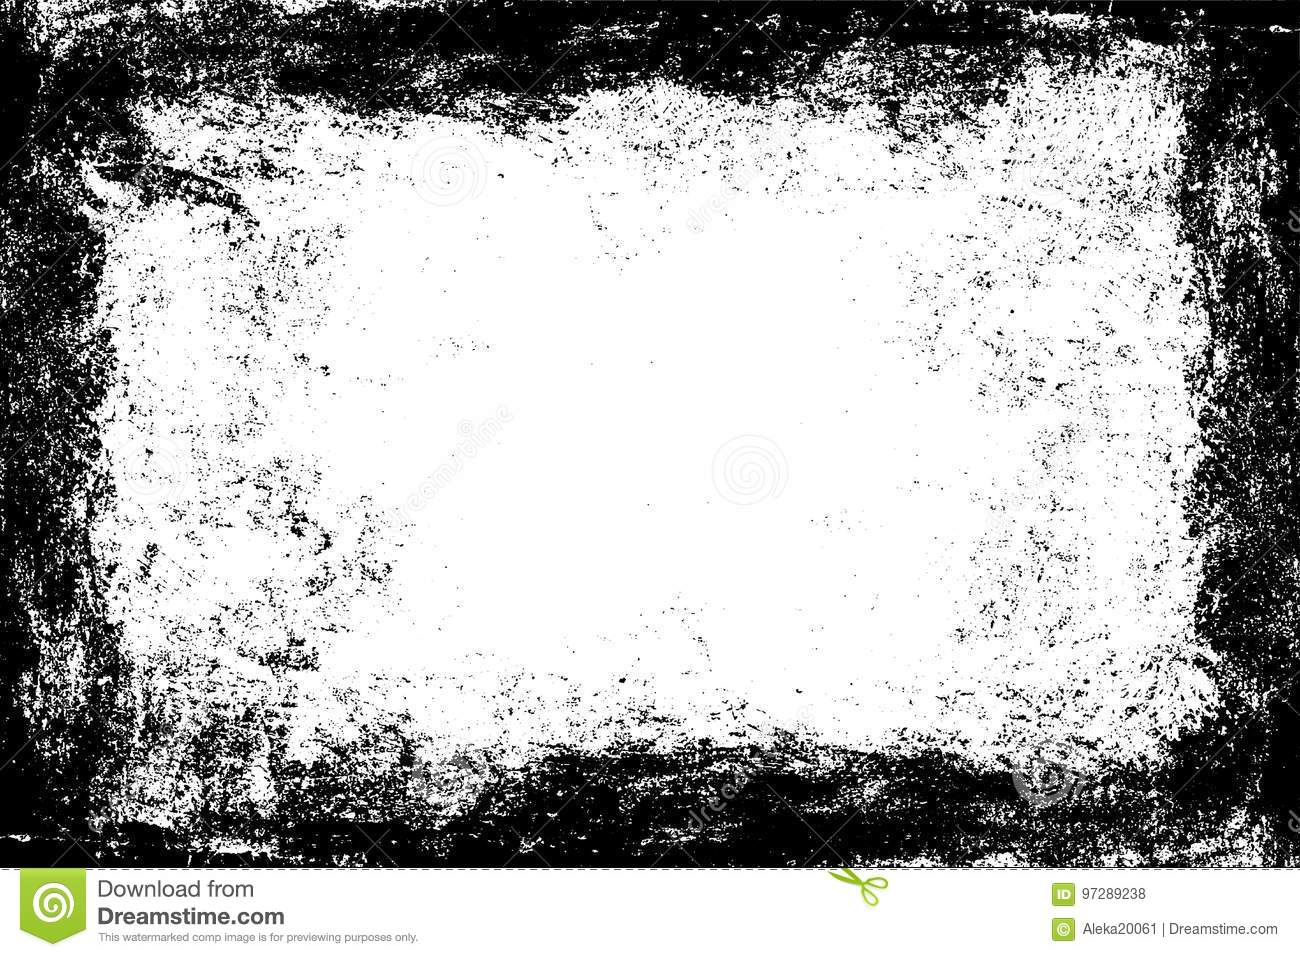 e3da2923d2b Rough black frame template. Old worn grunge wall. Dirty texture. Black white  background.